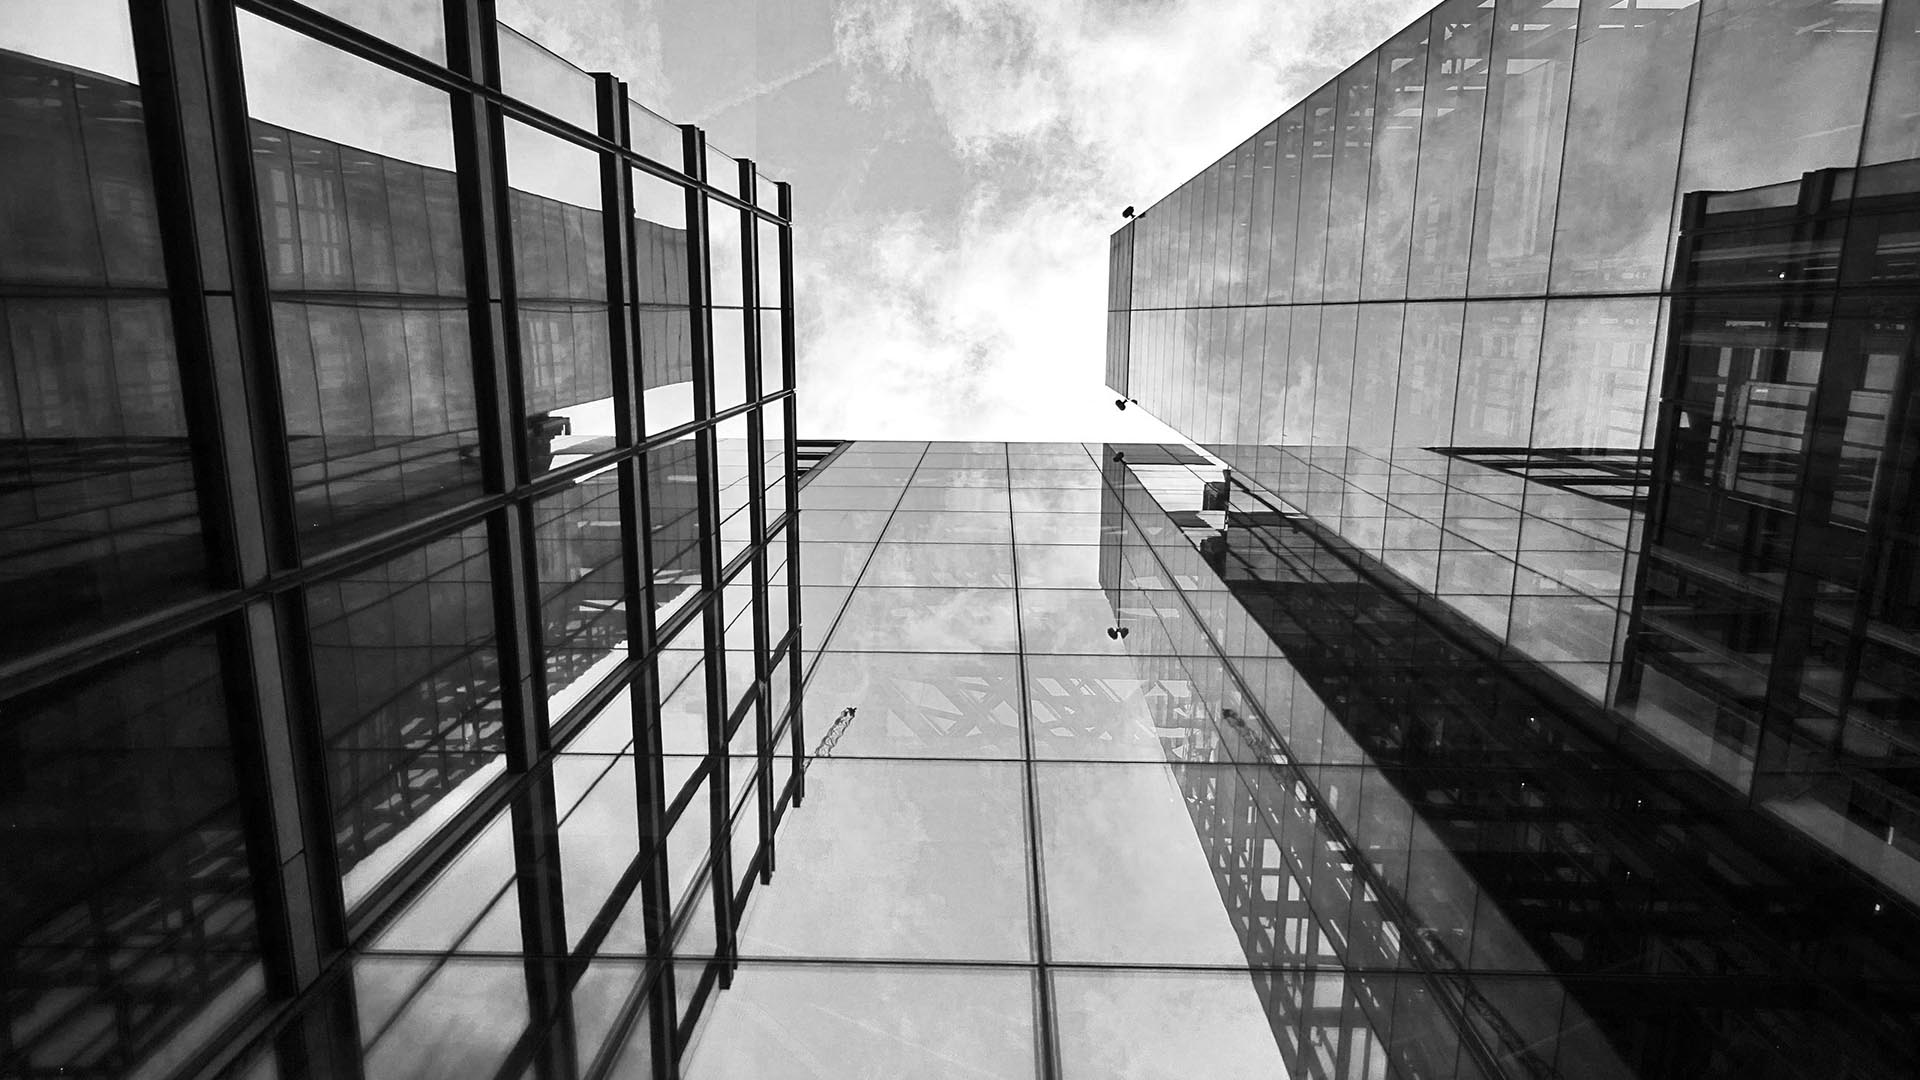 view looking up of tall office buildings